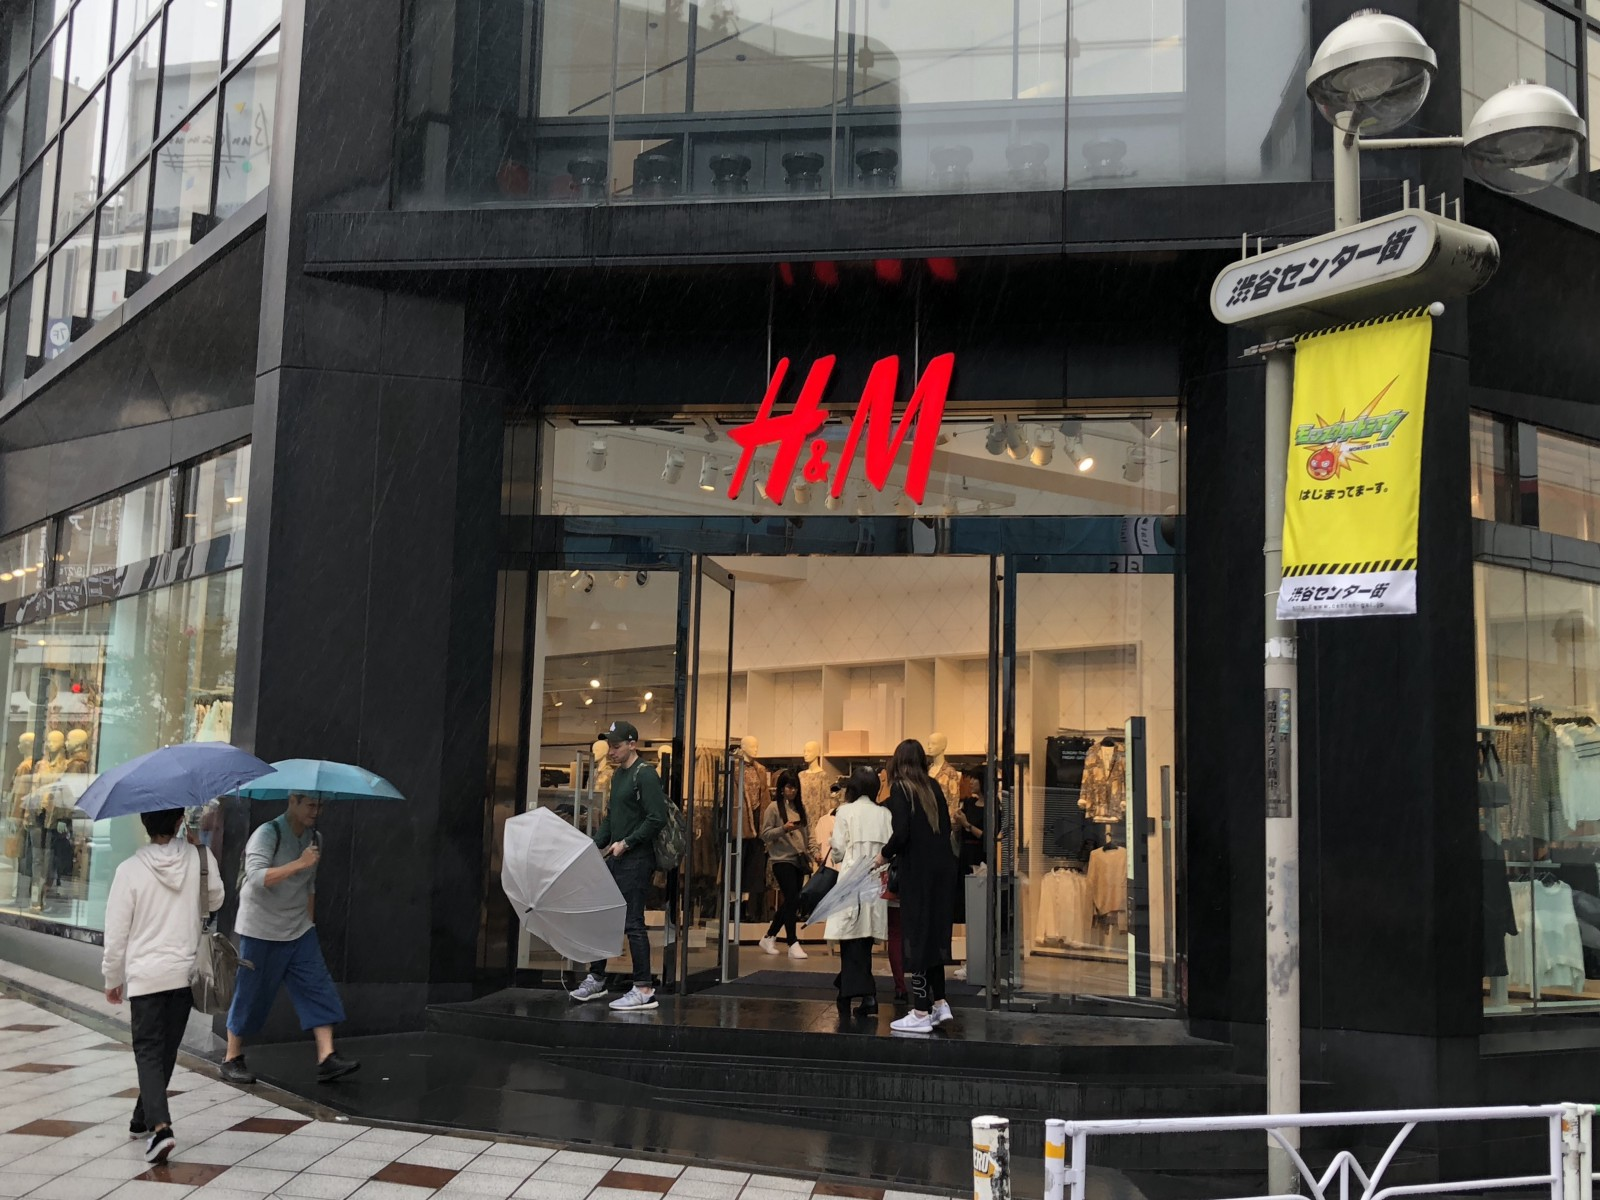 The leading fast fashion retailer, H&M's Shibuya branch